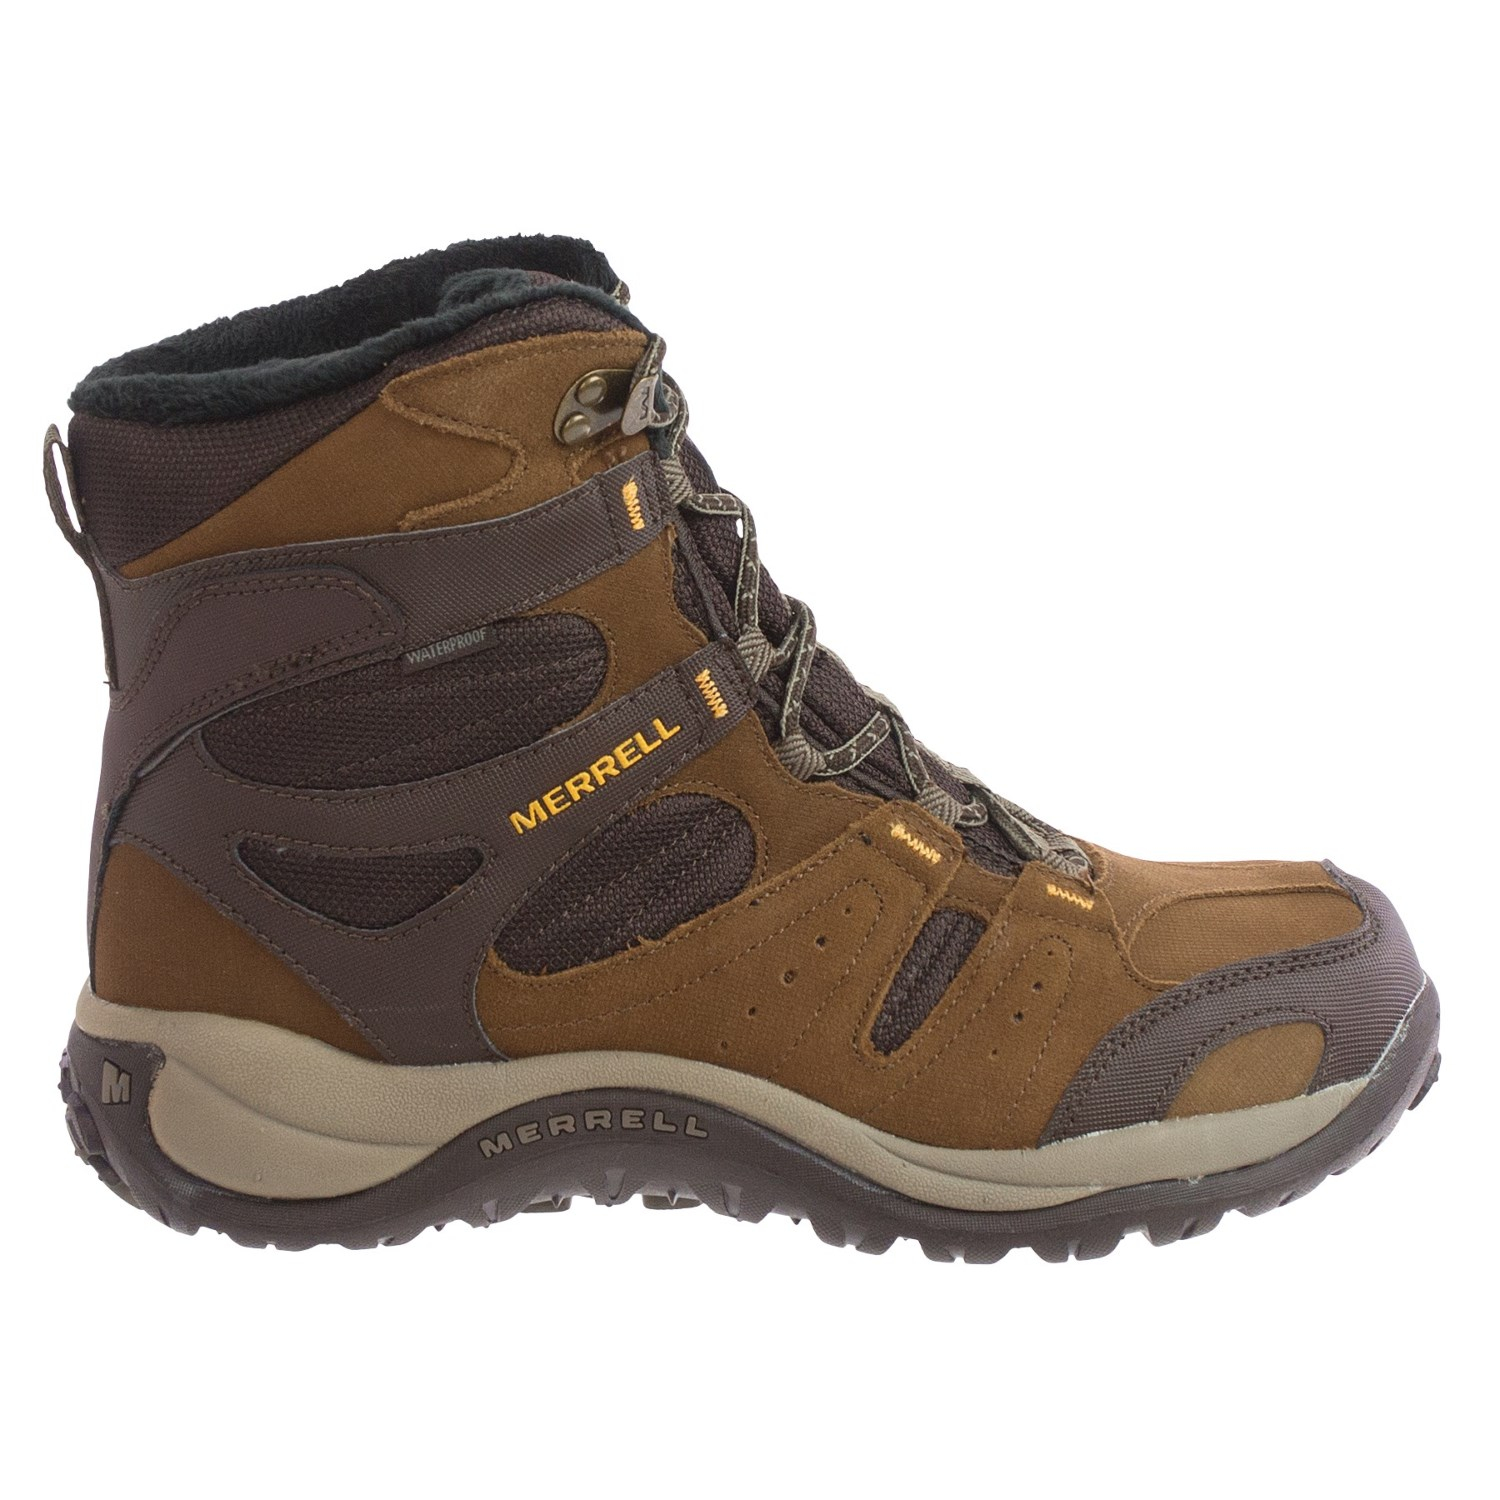 Mens Waterproof Snow Boots Clearance | NATIONAL SHERIFFS' ASSOCIATION